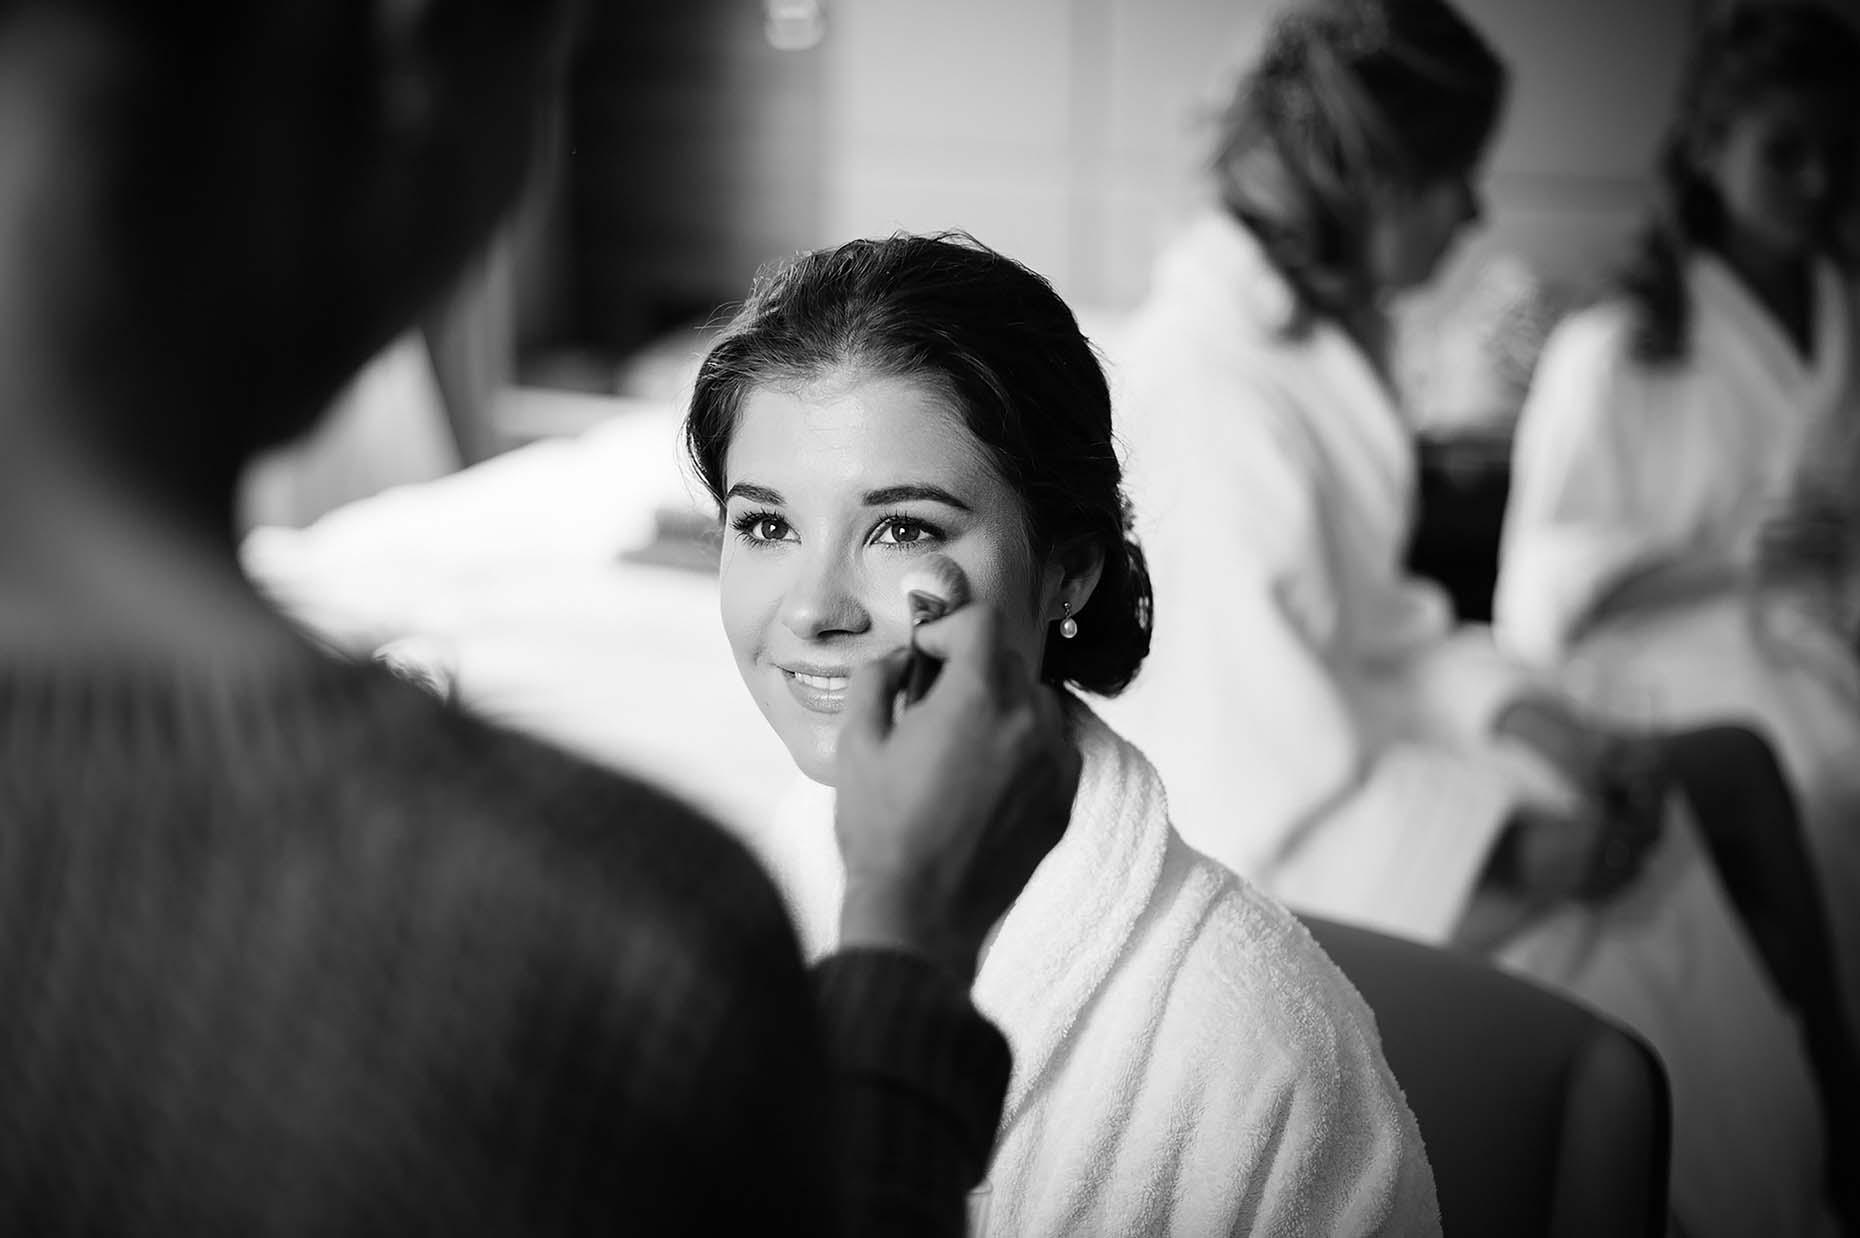 alice-bride-make-up-wedding-morning-prep-cambridge-photographer-mono-01